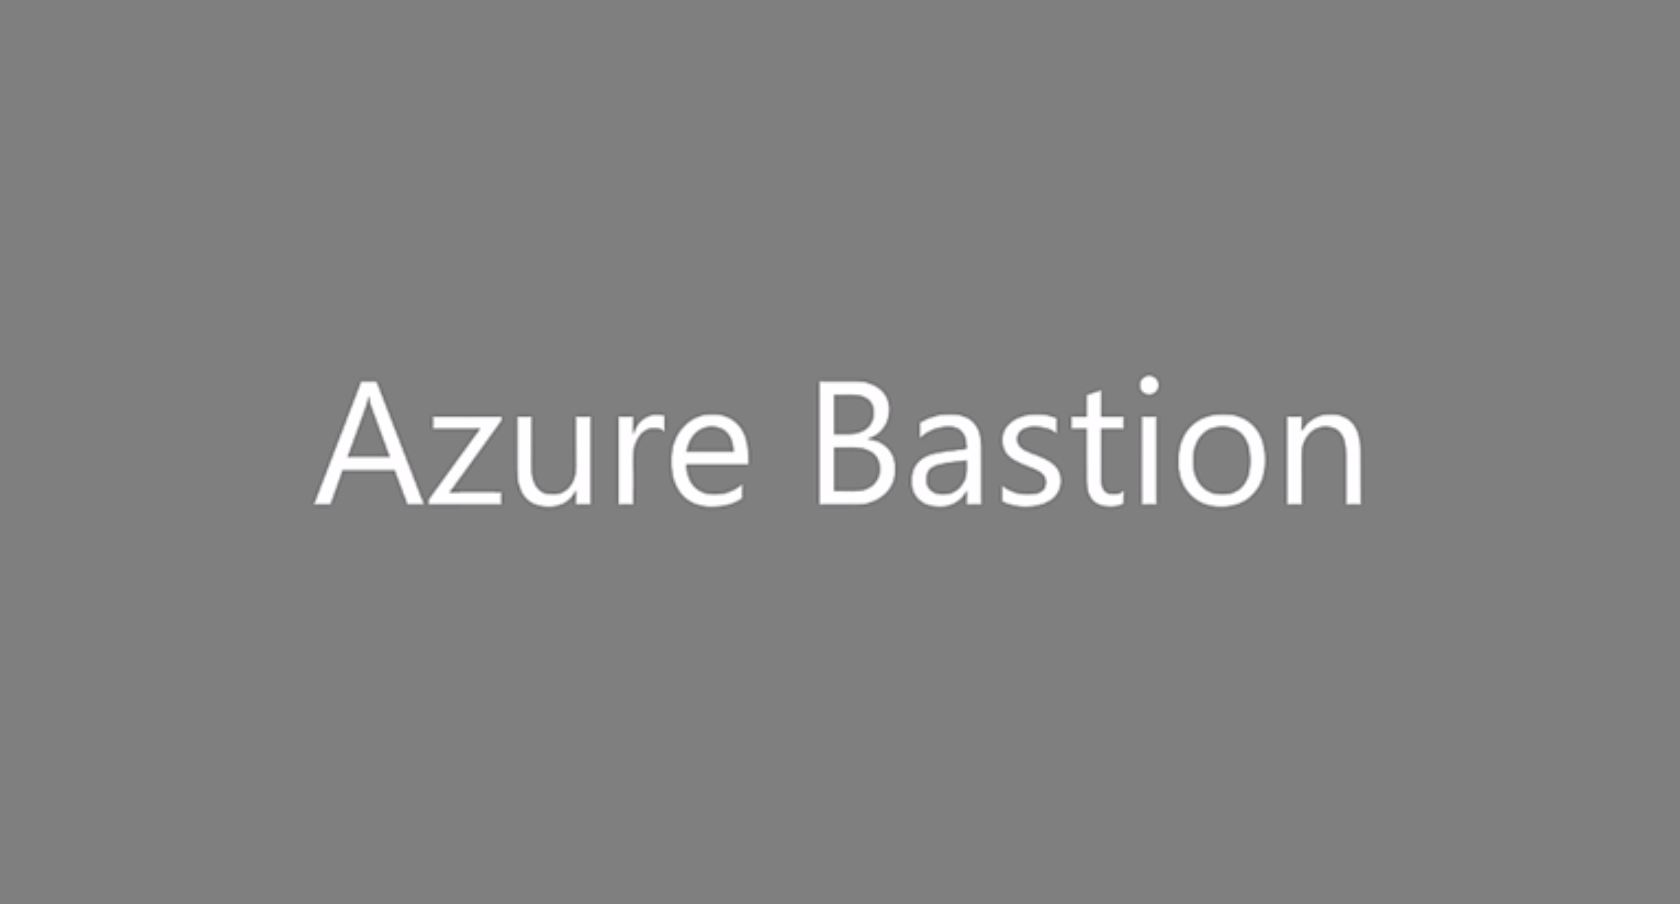 New Azure Bastion offers secure RDP and SSH access to your